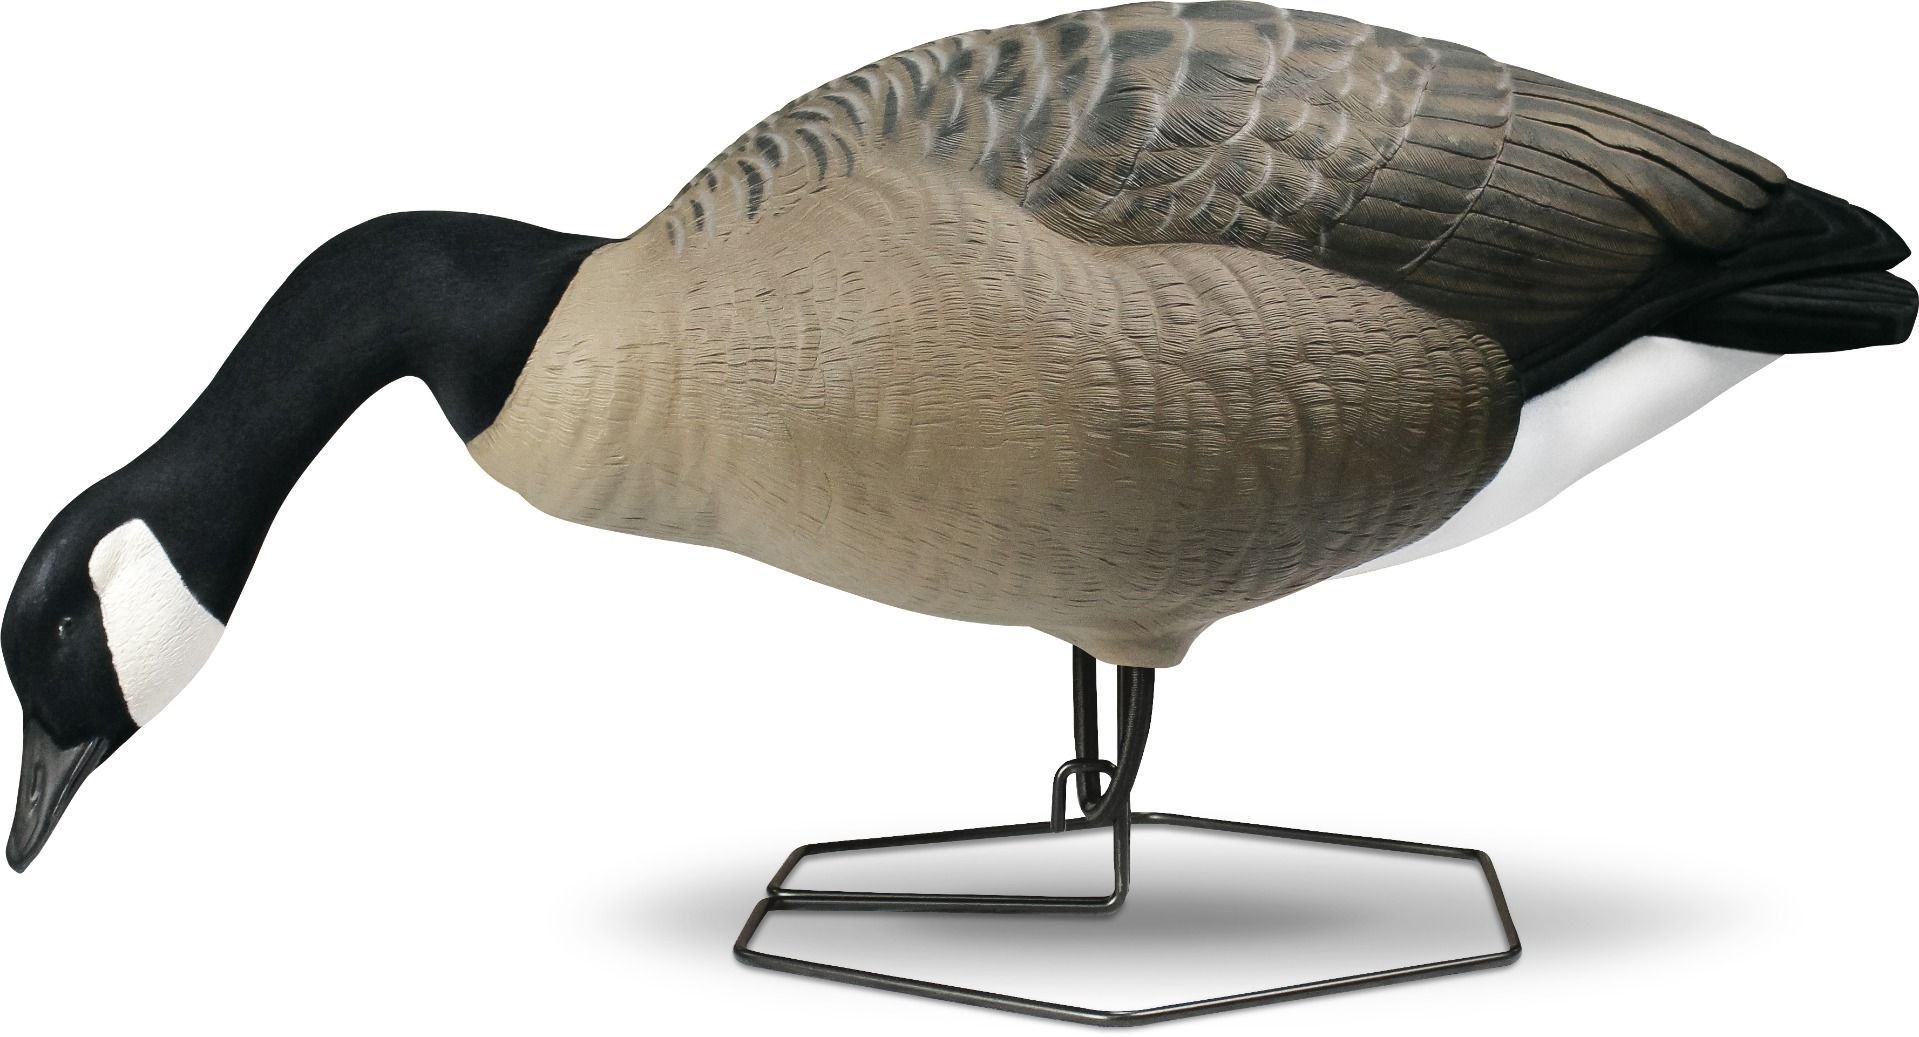 Rogue Series Full Body Canada Goose Decoys - Feeder Pack